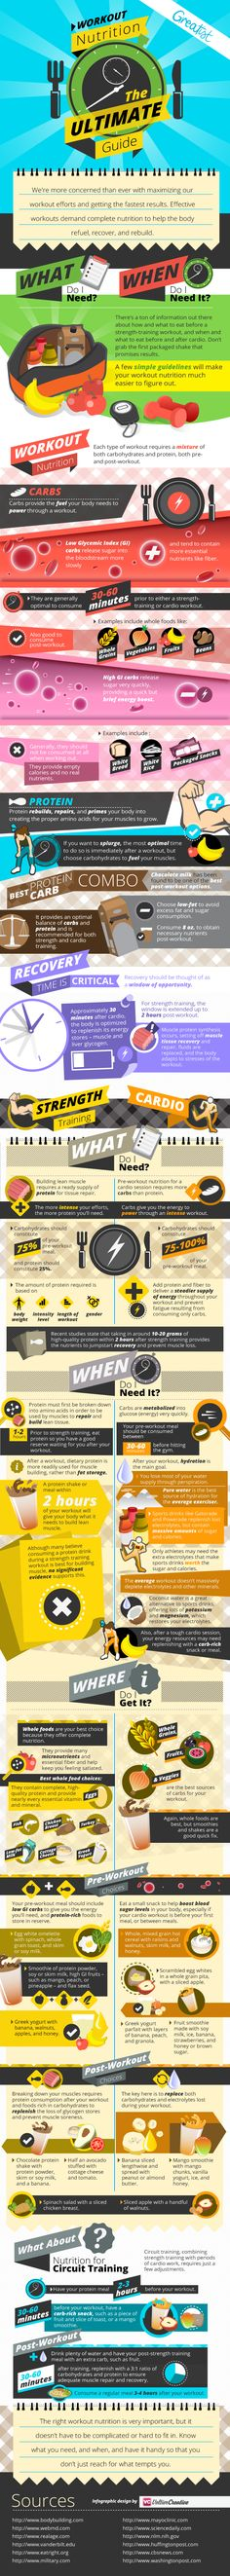 workout nutrition ultimate guide